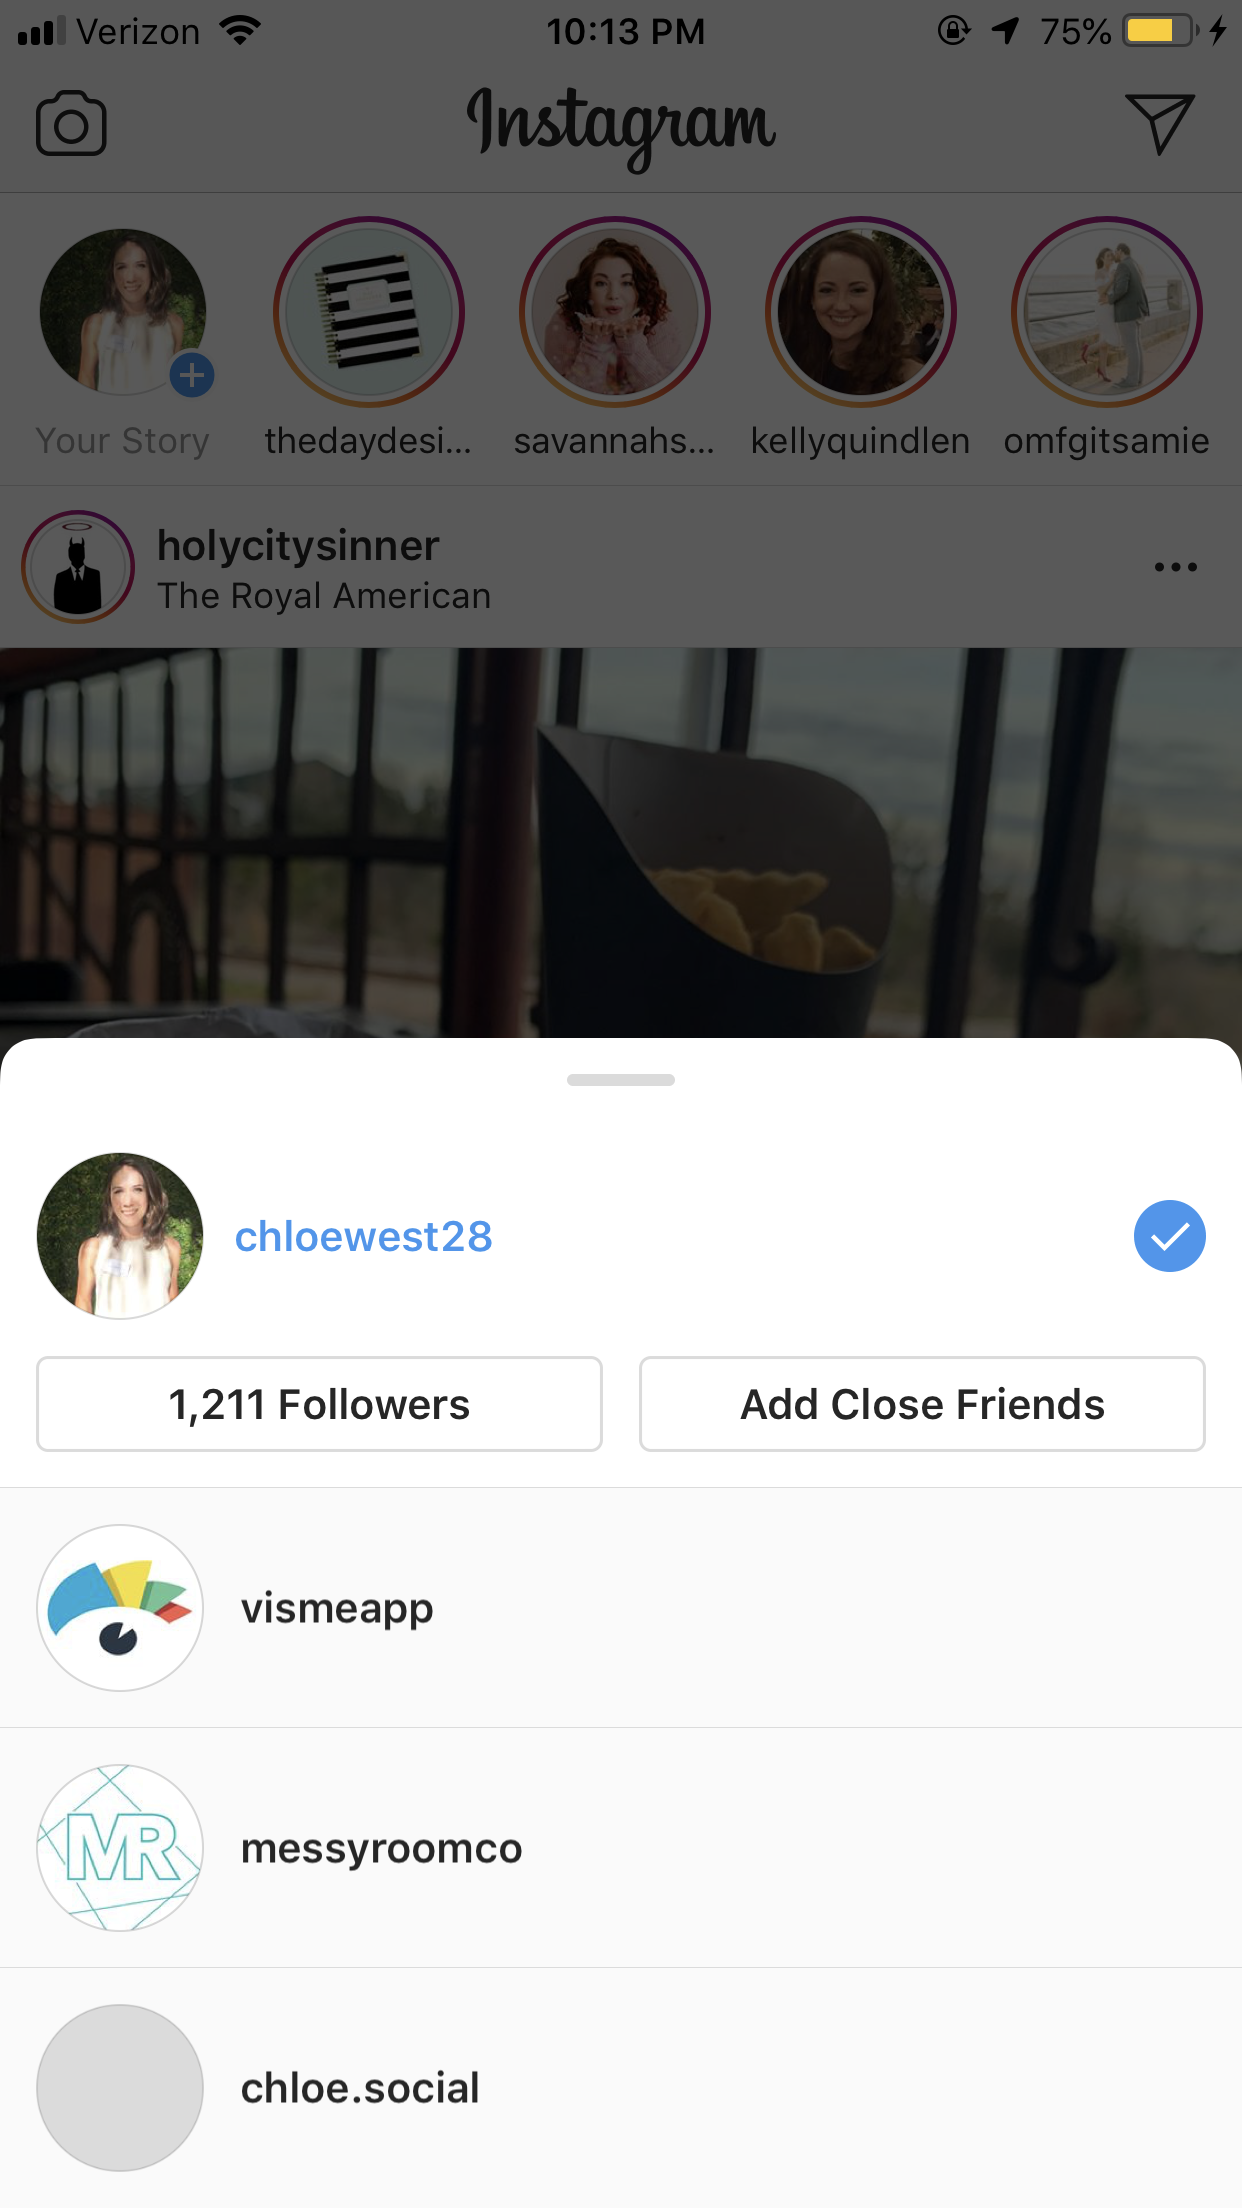 instagram hacks - manage multiple accounts from one device